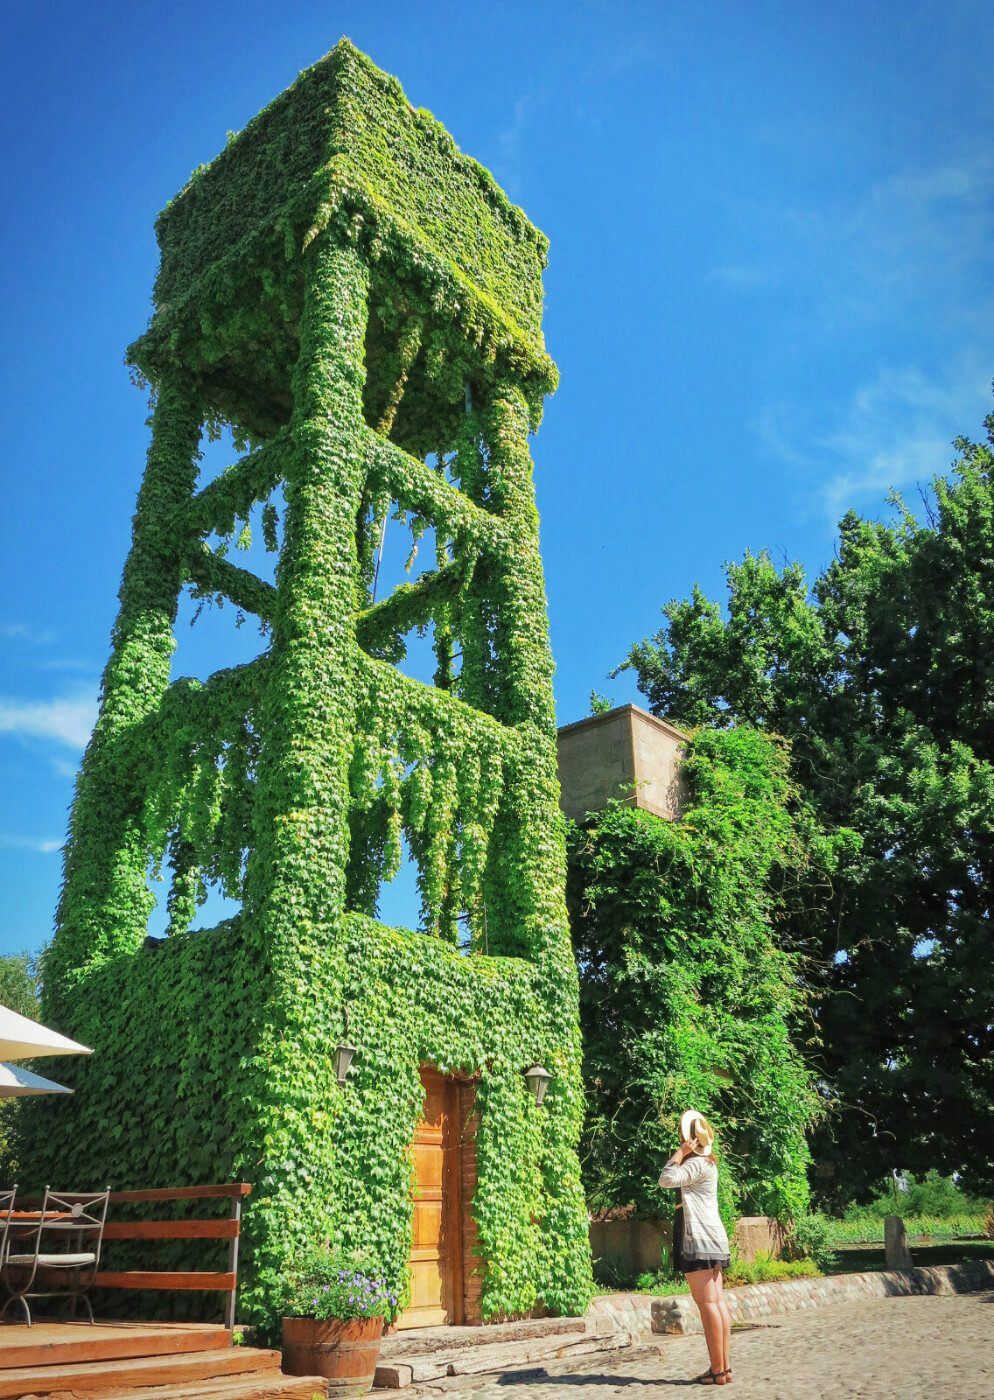 An ivy-covered water tower at a winery in Mendoza's Lujan de Cuyo wine valley, part of our wine tasting tour with Mendoza Wine Camp in Argentina!